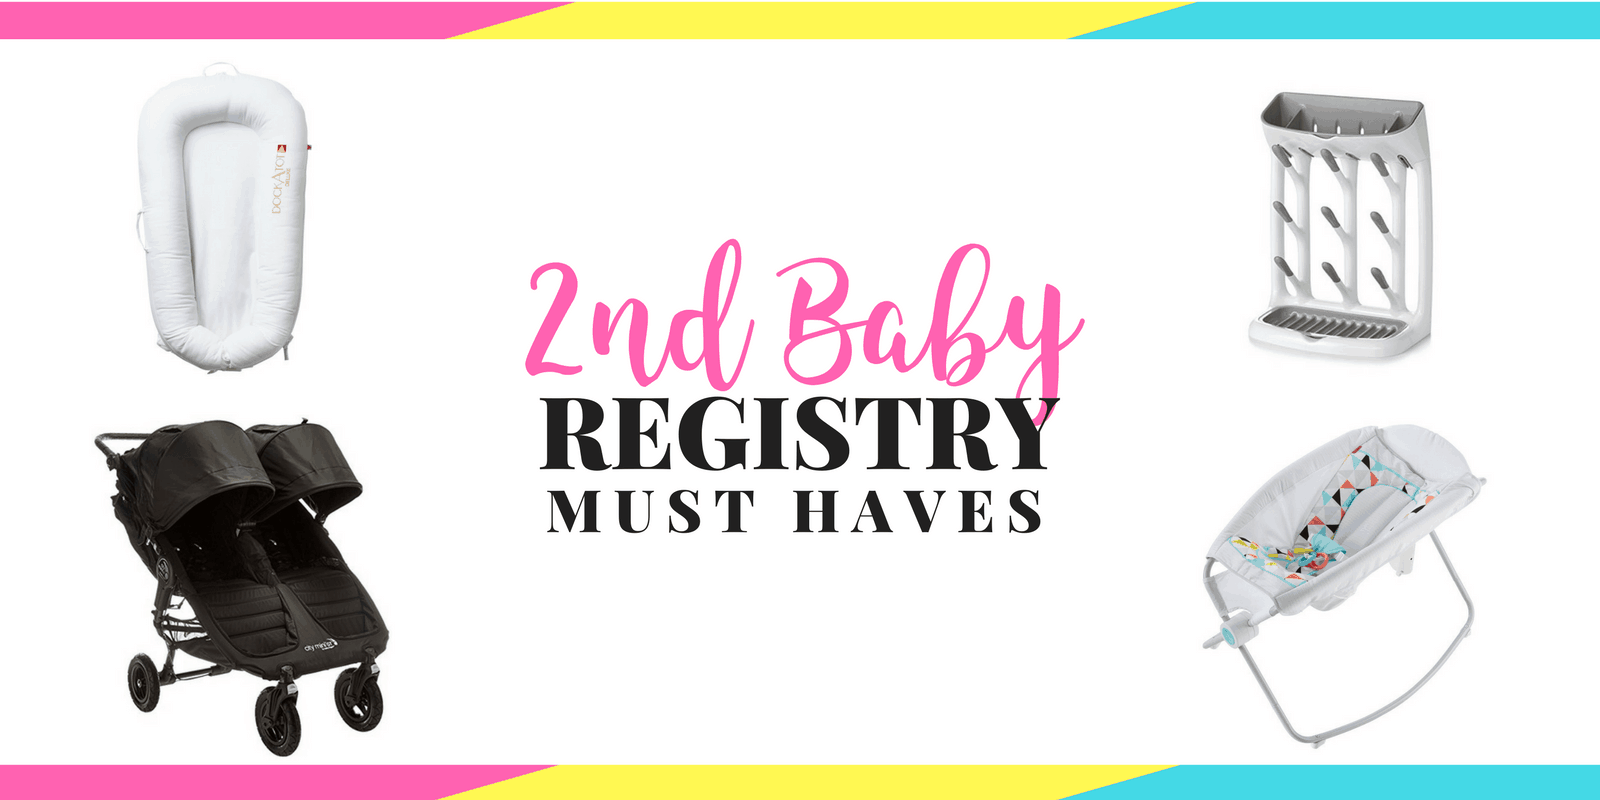 Second Baby Registry Ideas & Must Haves